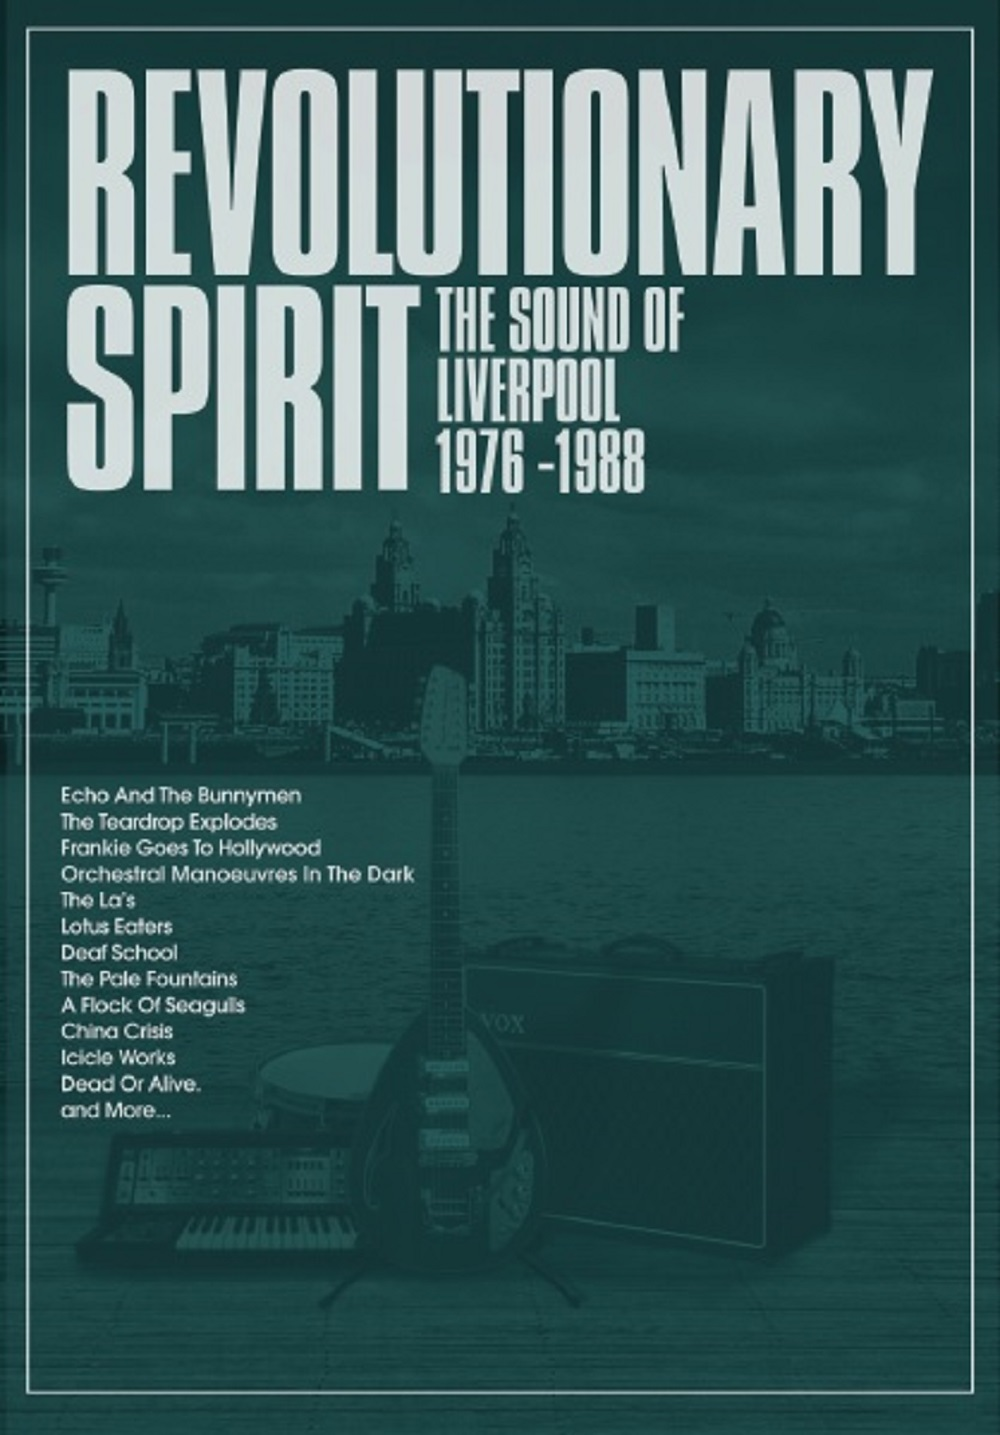 Revolutionary Spirit: The Sound Of Liverpool, 1976 - 1988, Various Artists,  5CD Deluxe Boxset